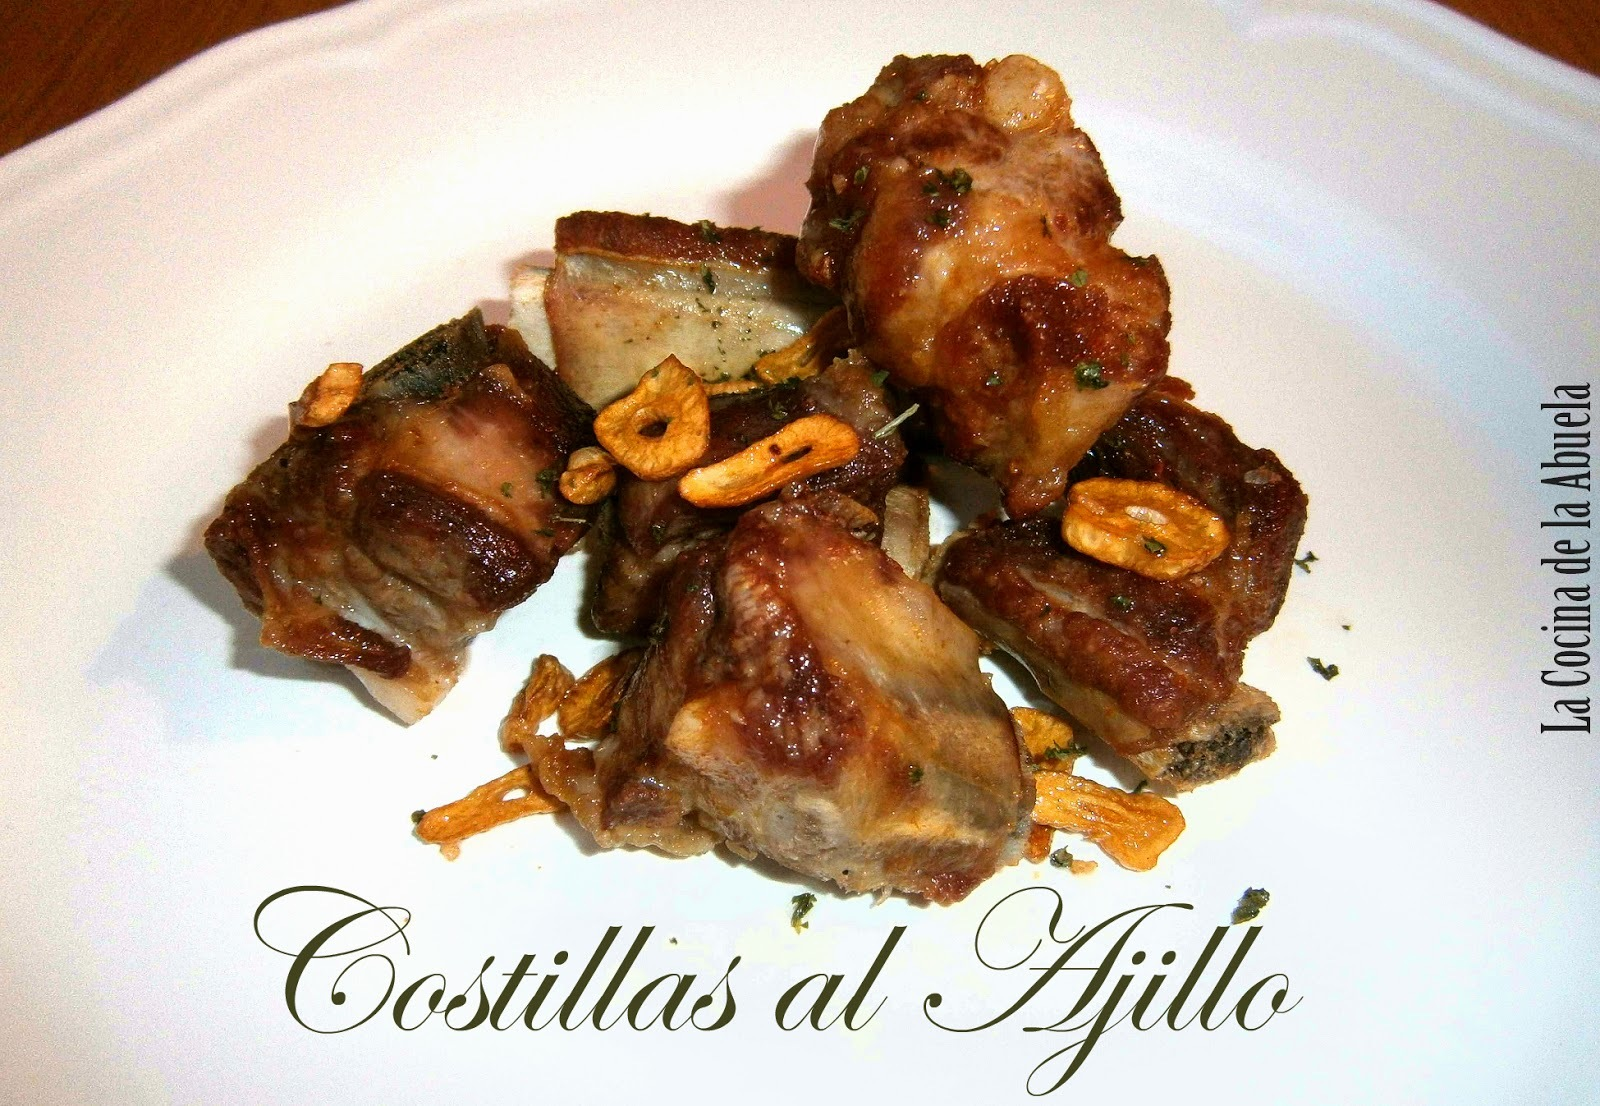 Costillas al Ajillo.